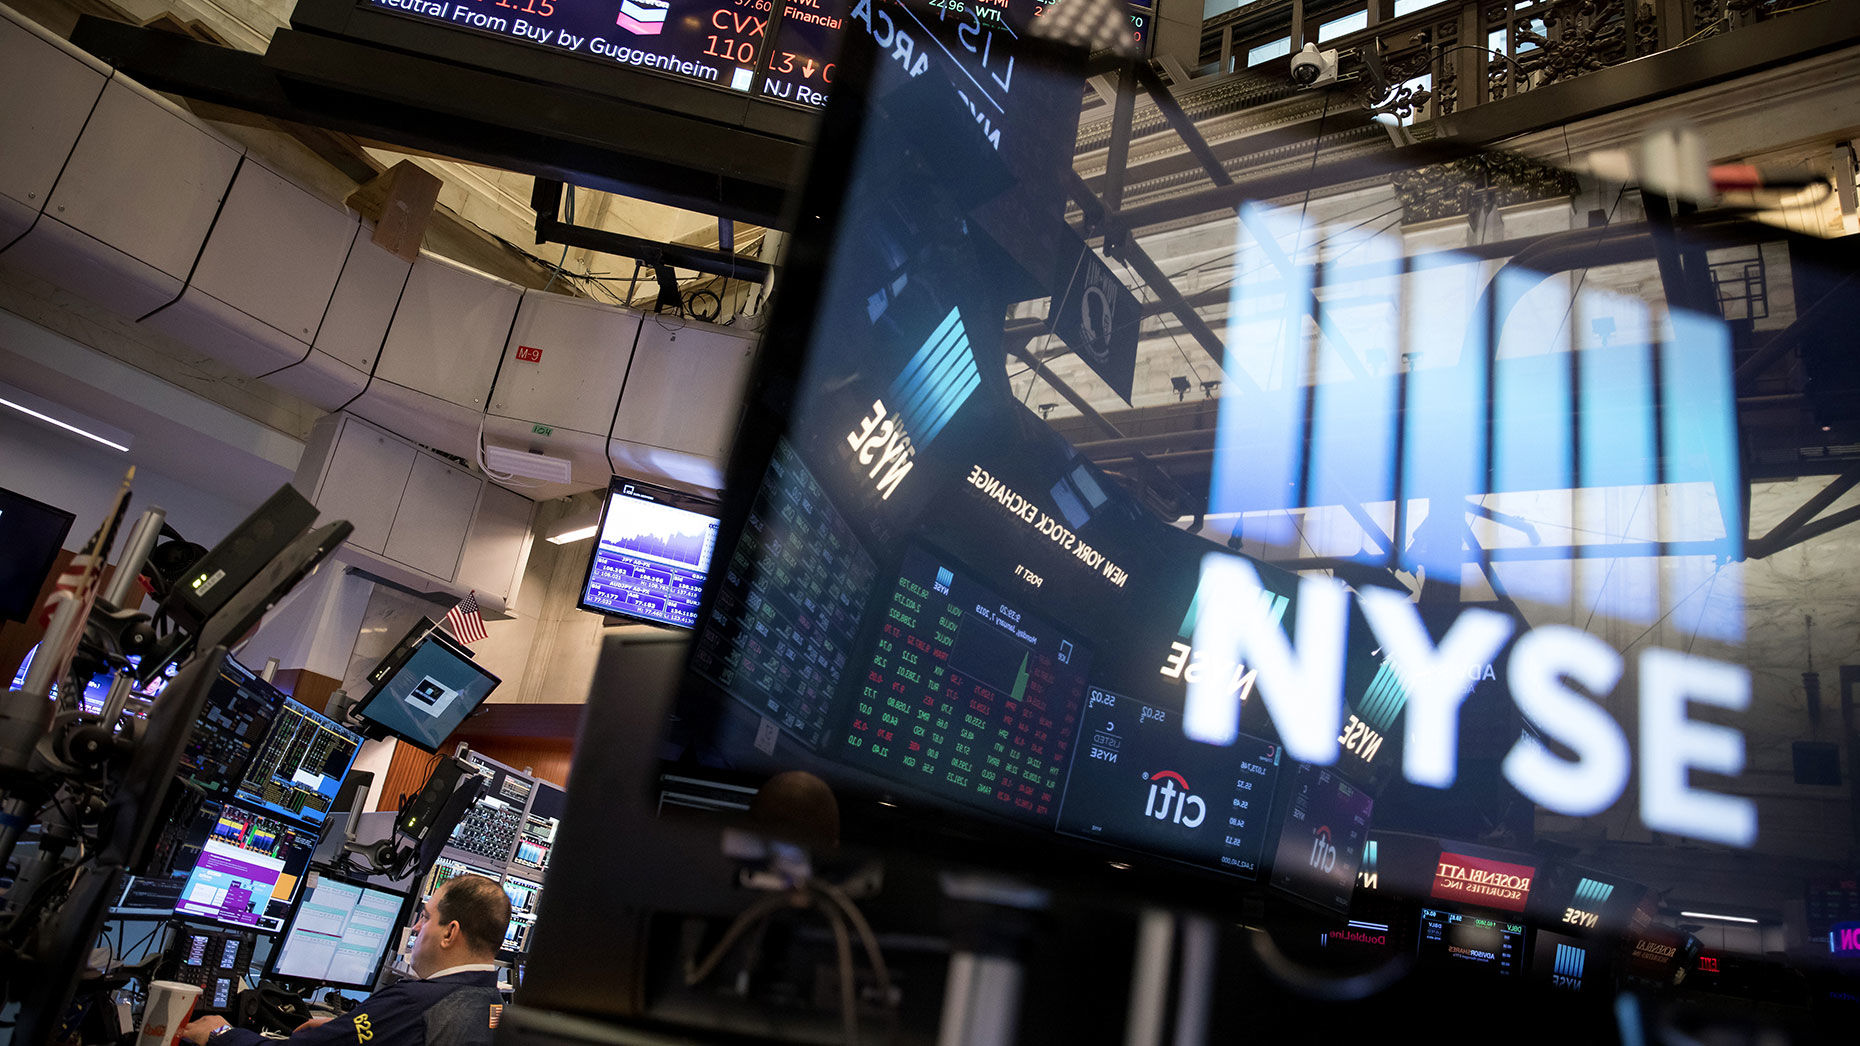 The trading floor of the New York Stock Exchange in New York. Photo by Bloomberg.